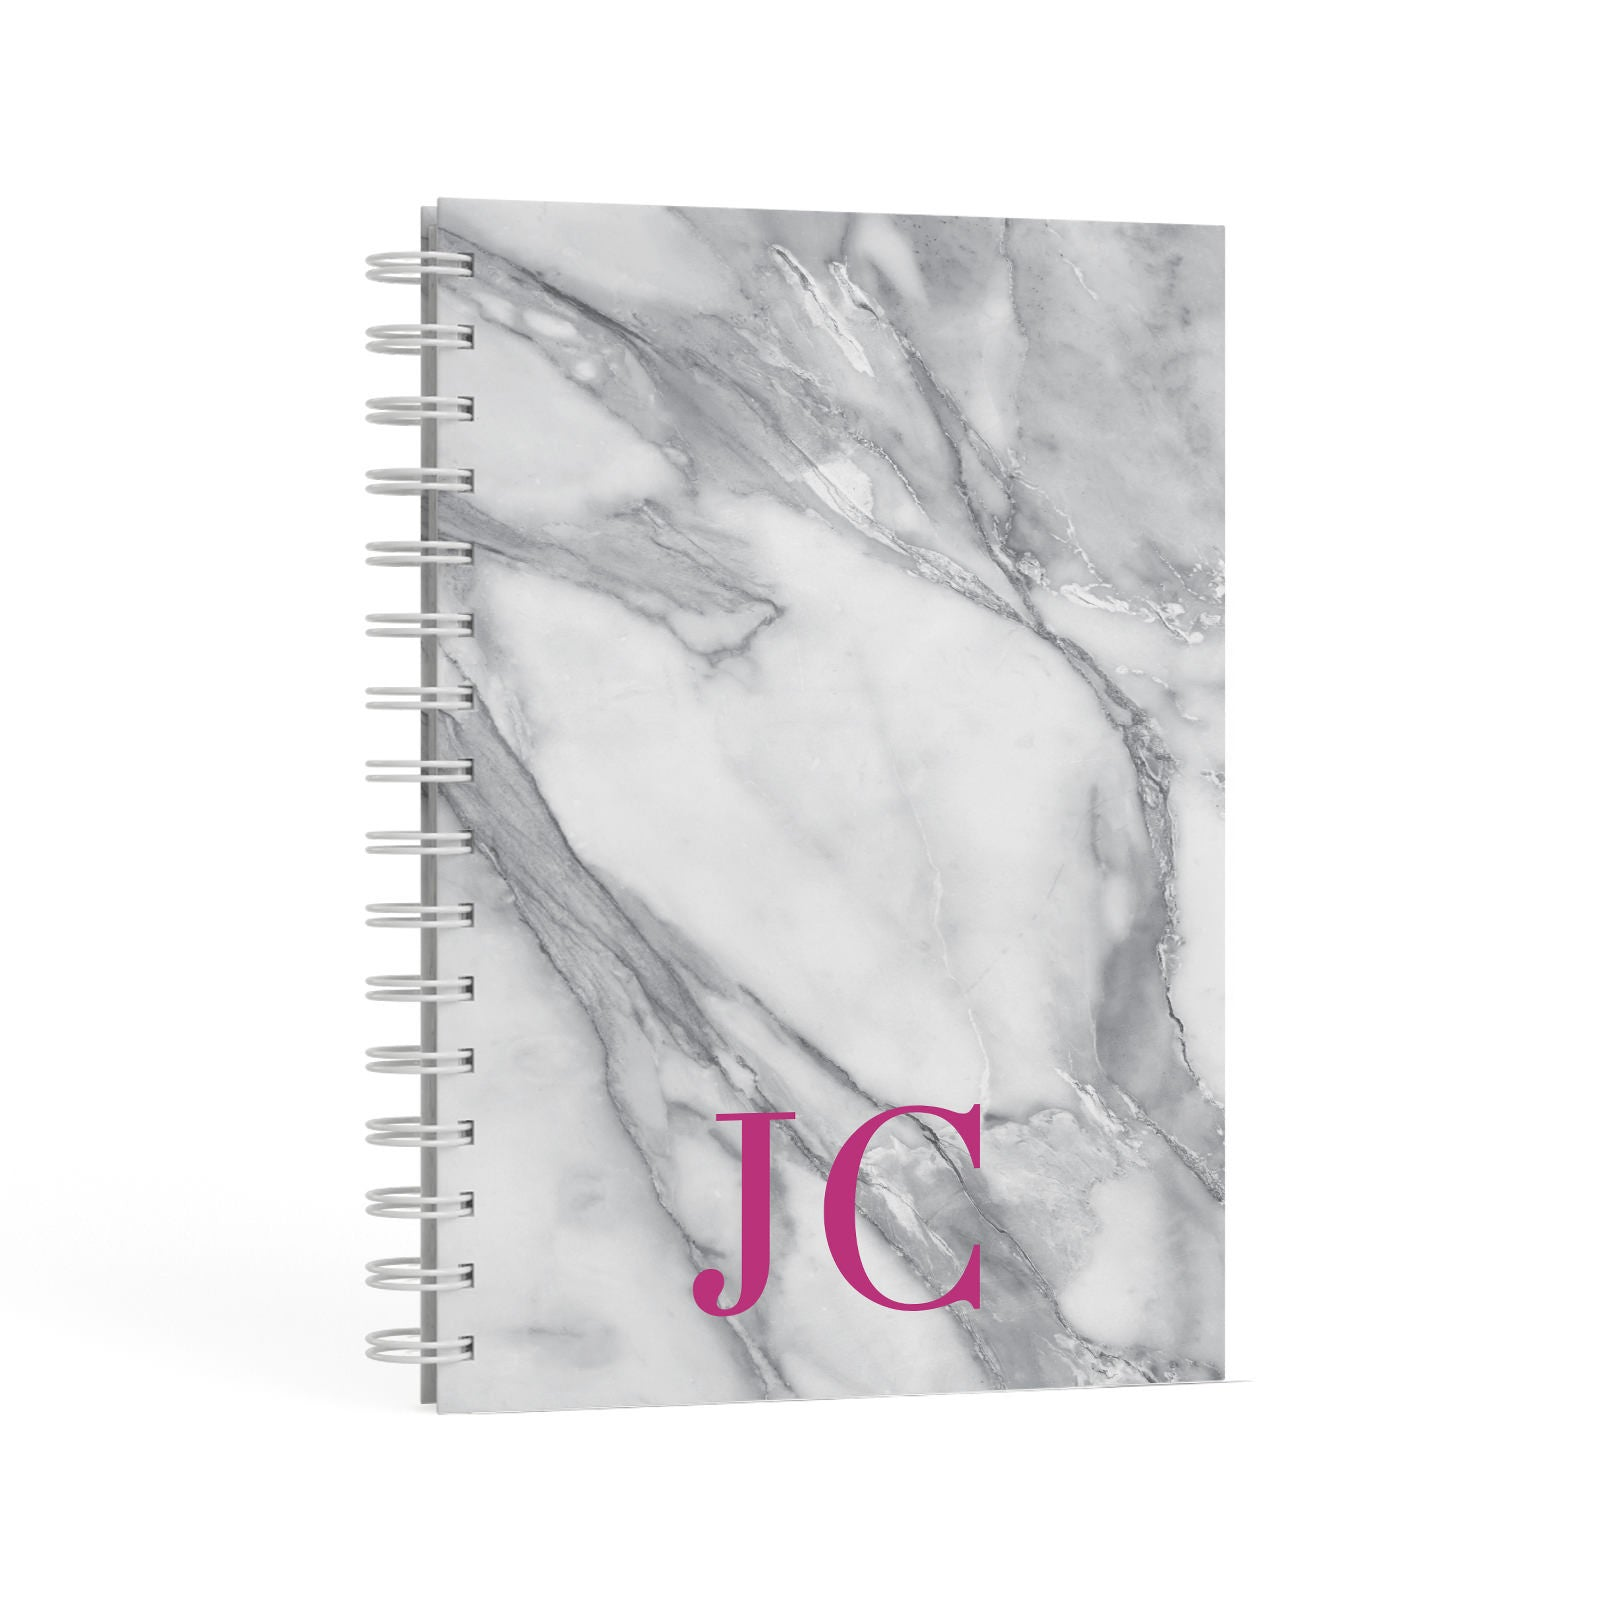 Grey Marble Pink Initials A5 Hardcover Notebook Second Side View